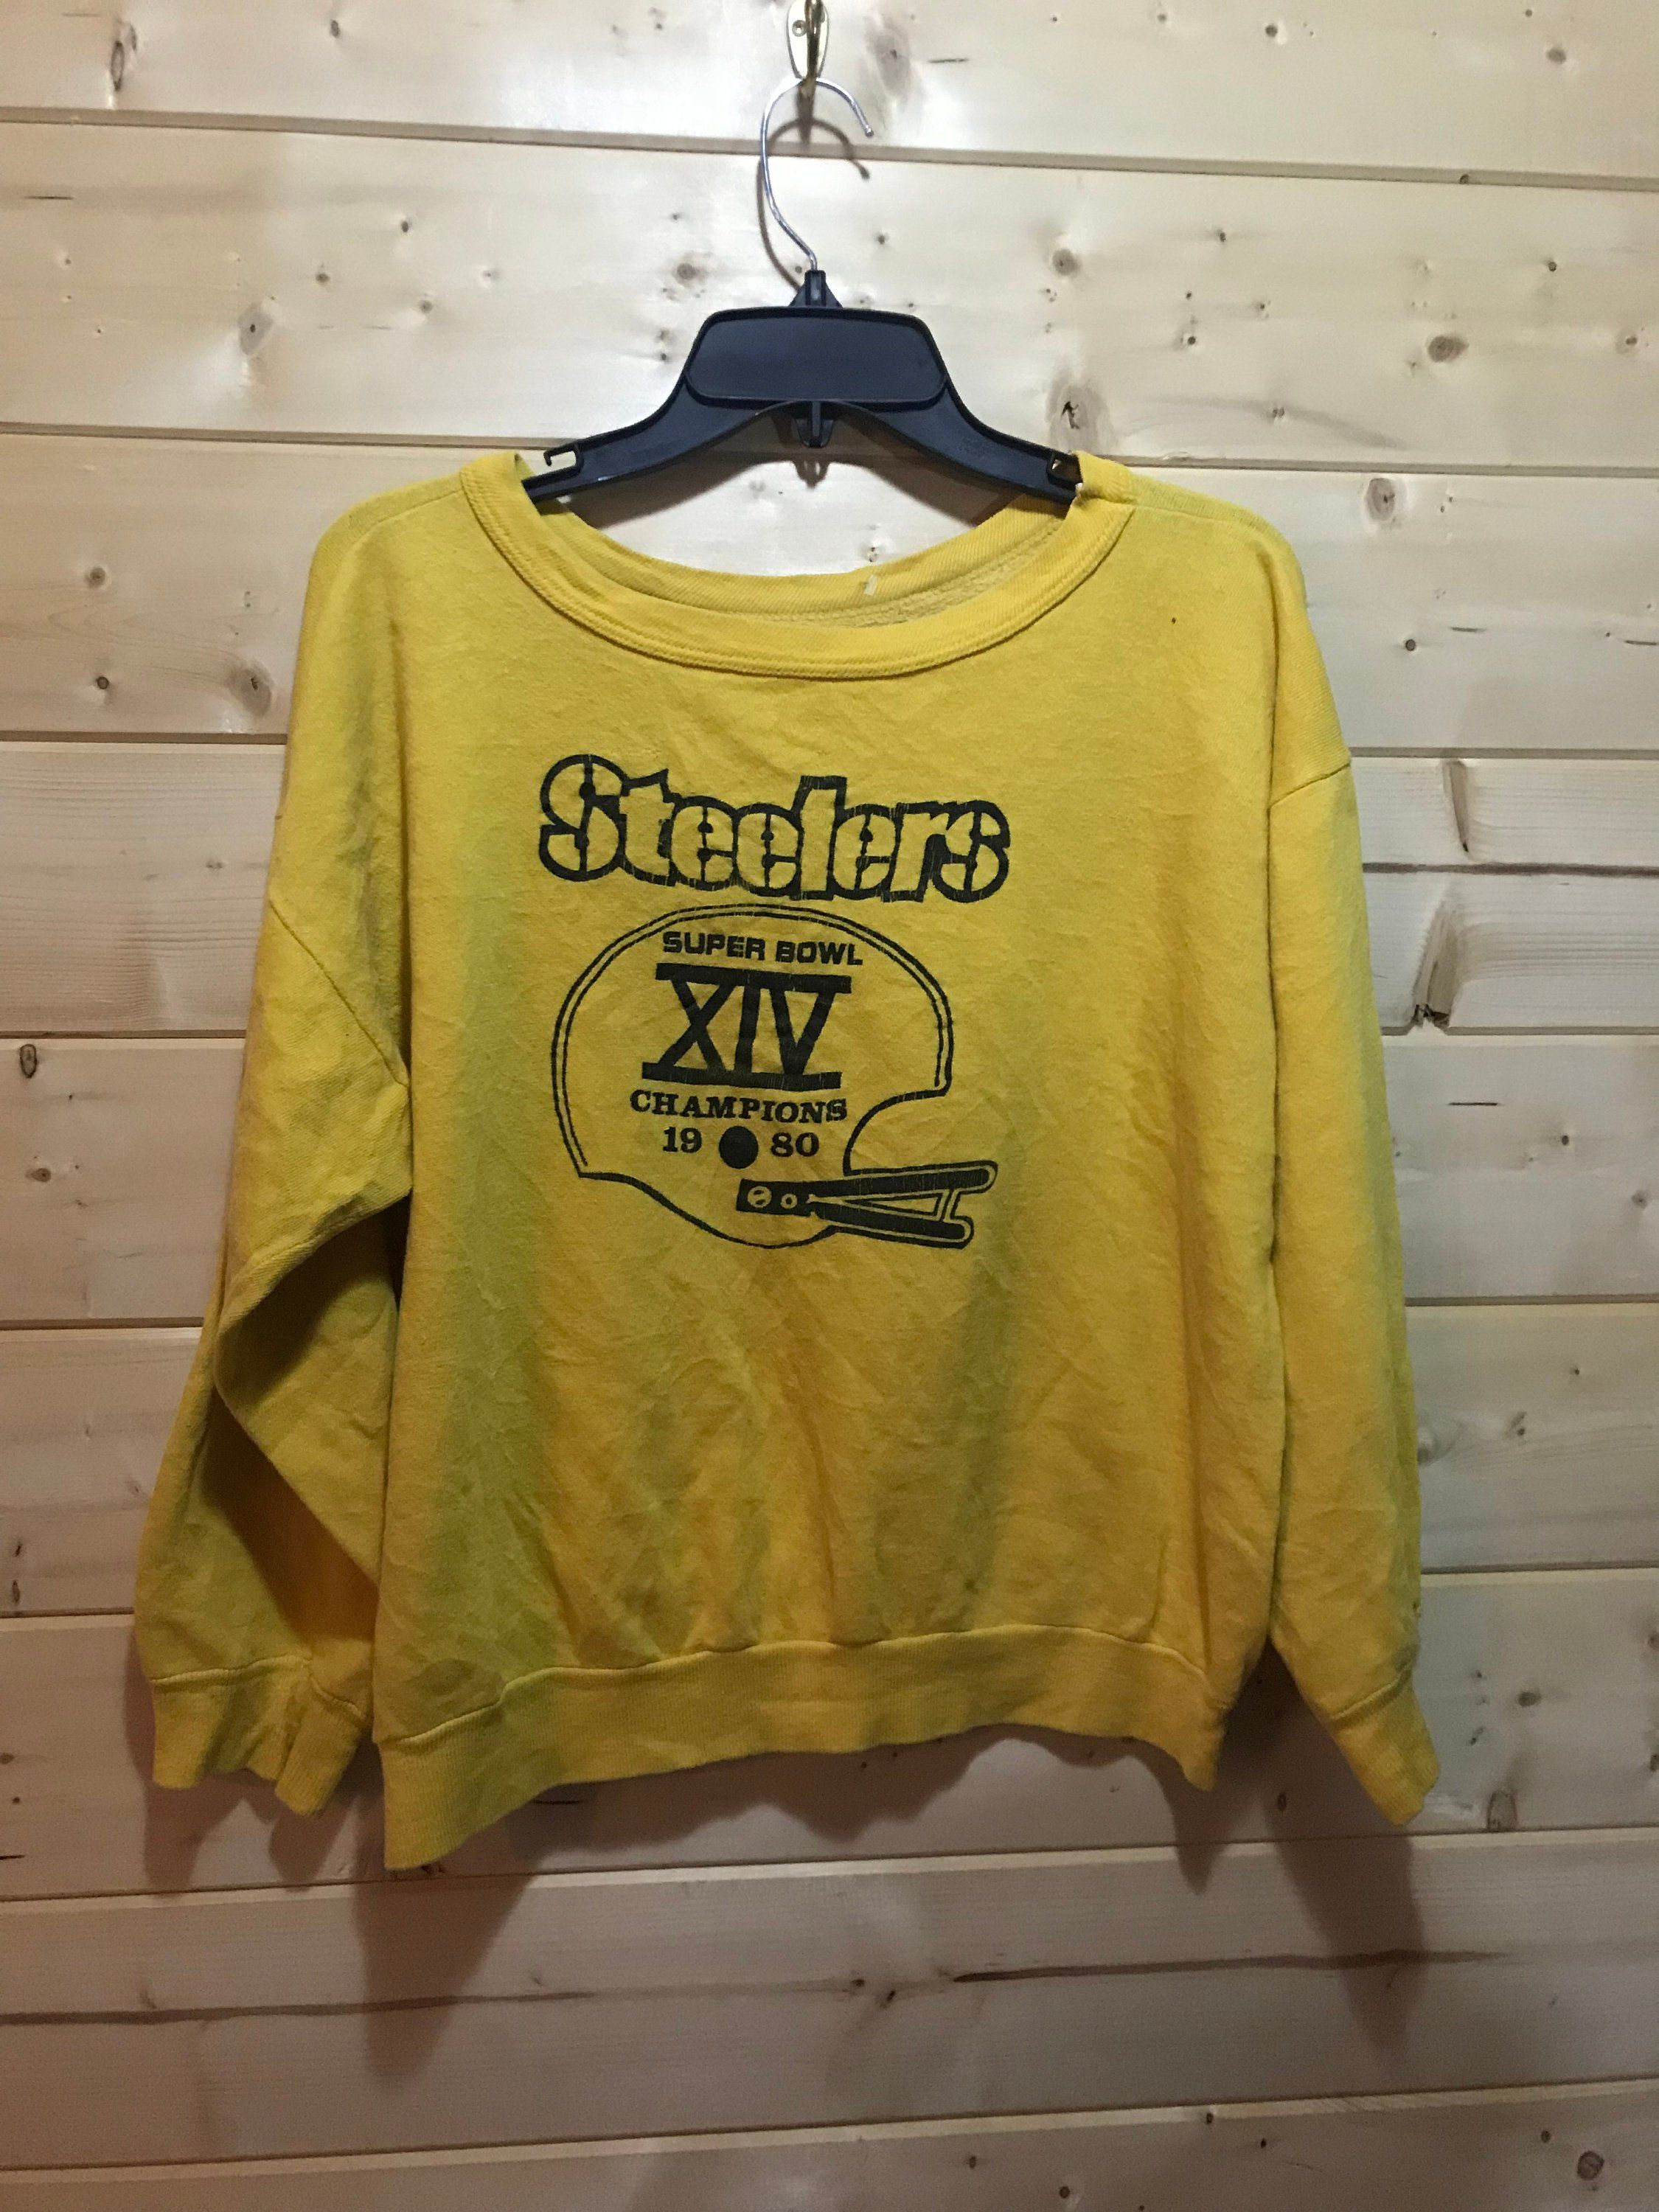 best website b4e0a 1ba8f Vintage 1980 Super Bowl Pittsburgh Steelers SweatShirt 50/50 ...